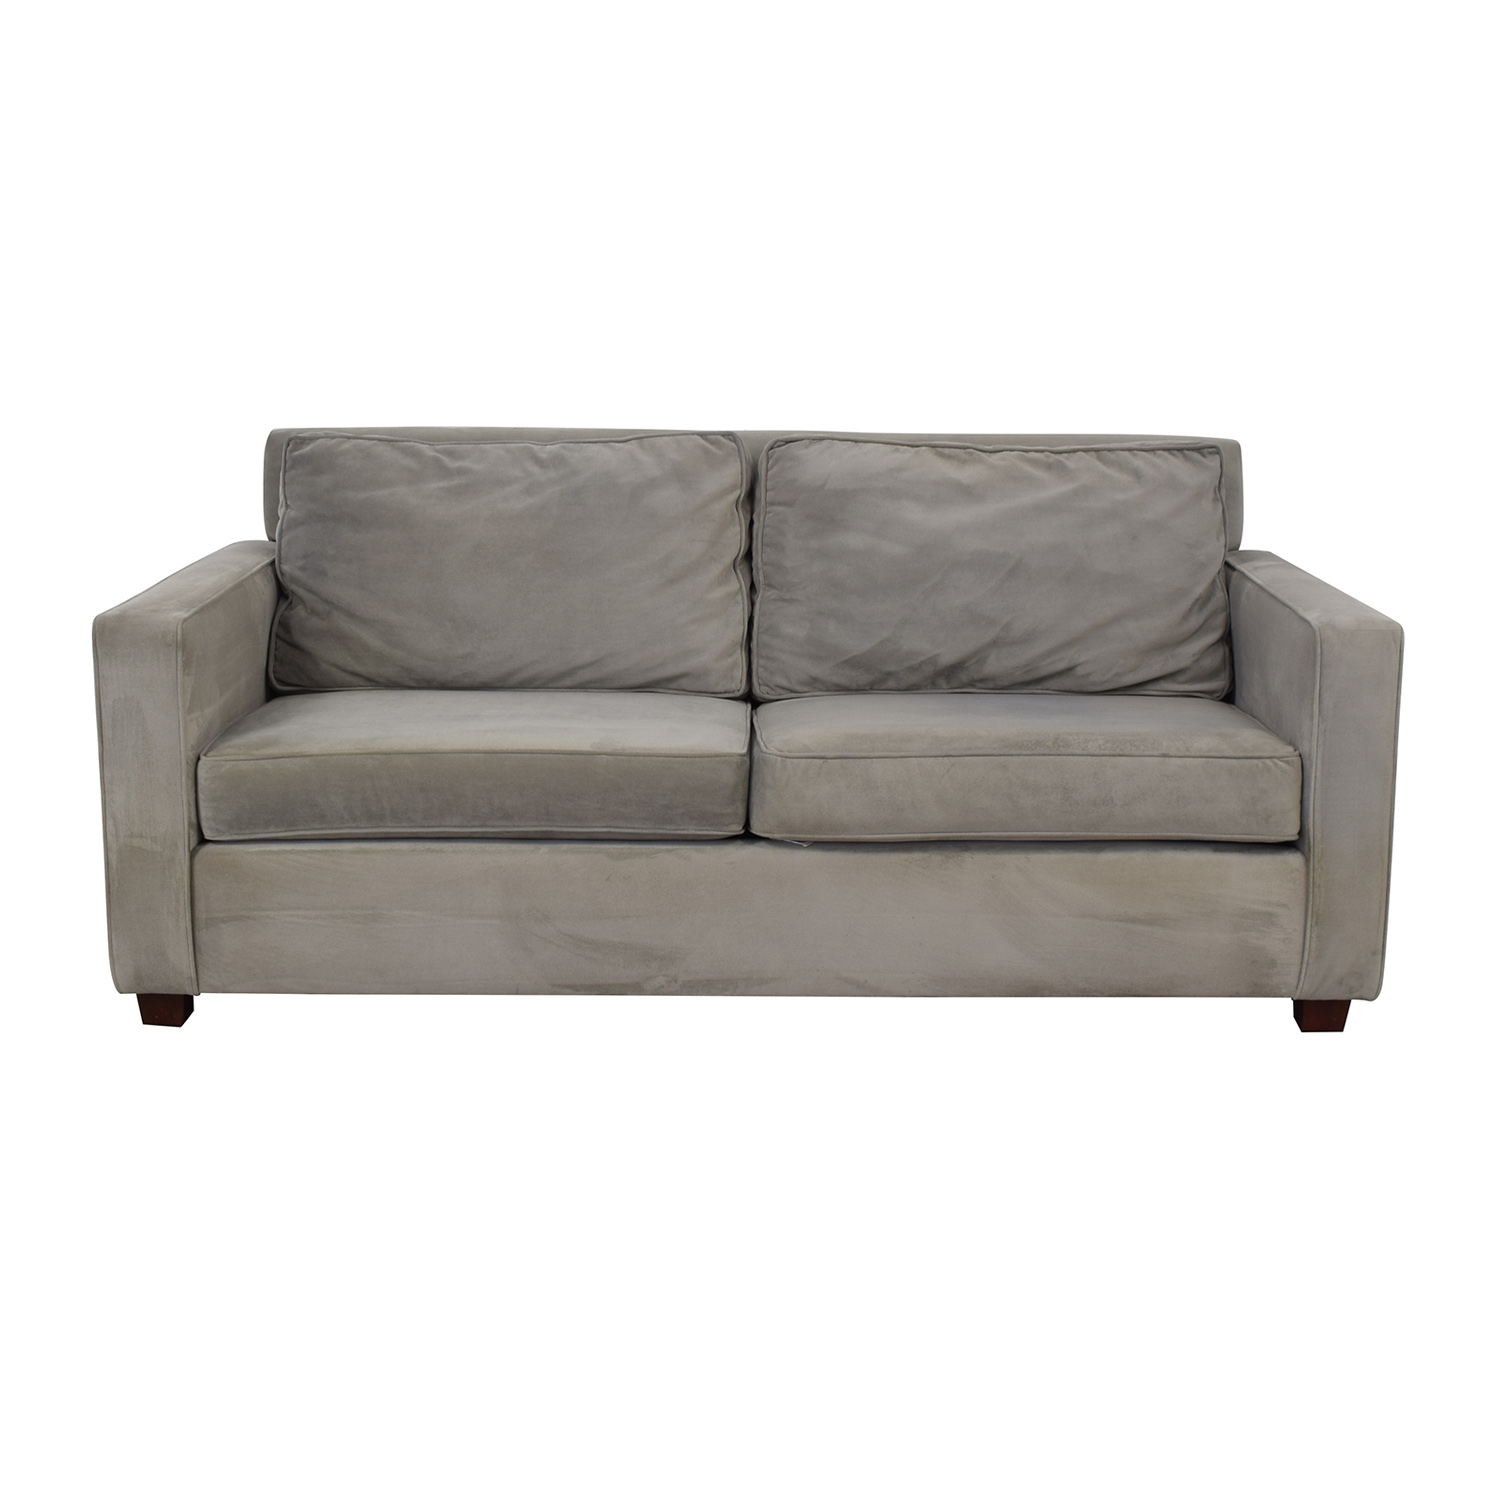 West Elm West Elm Henry Sofa used